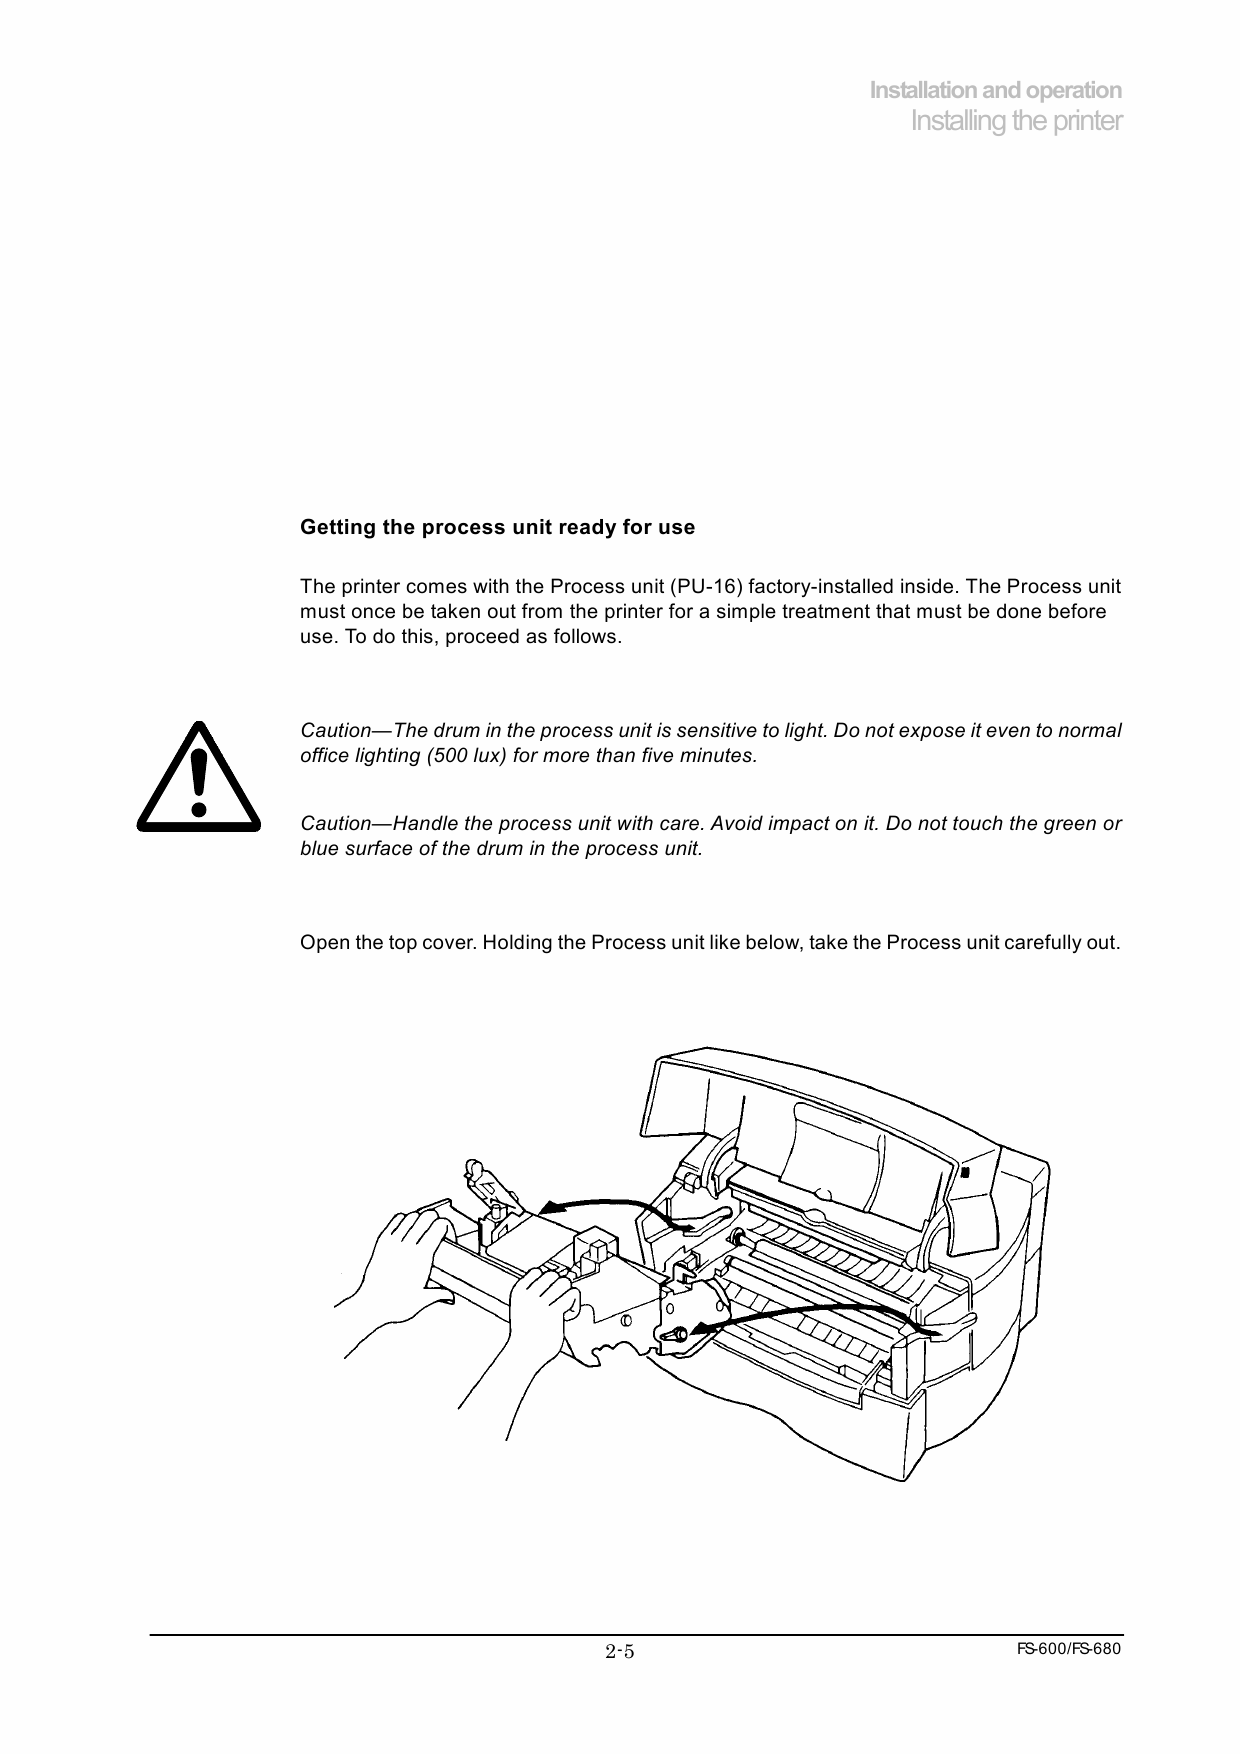 KYOCERA LaserPrinter FS-600 680 Parts and Service Manual-2